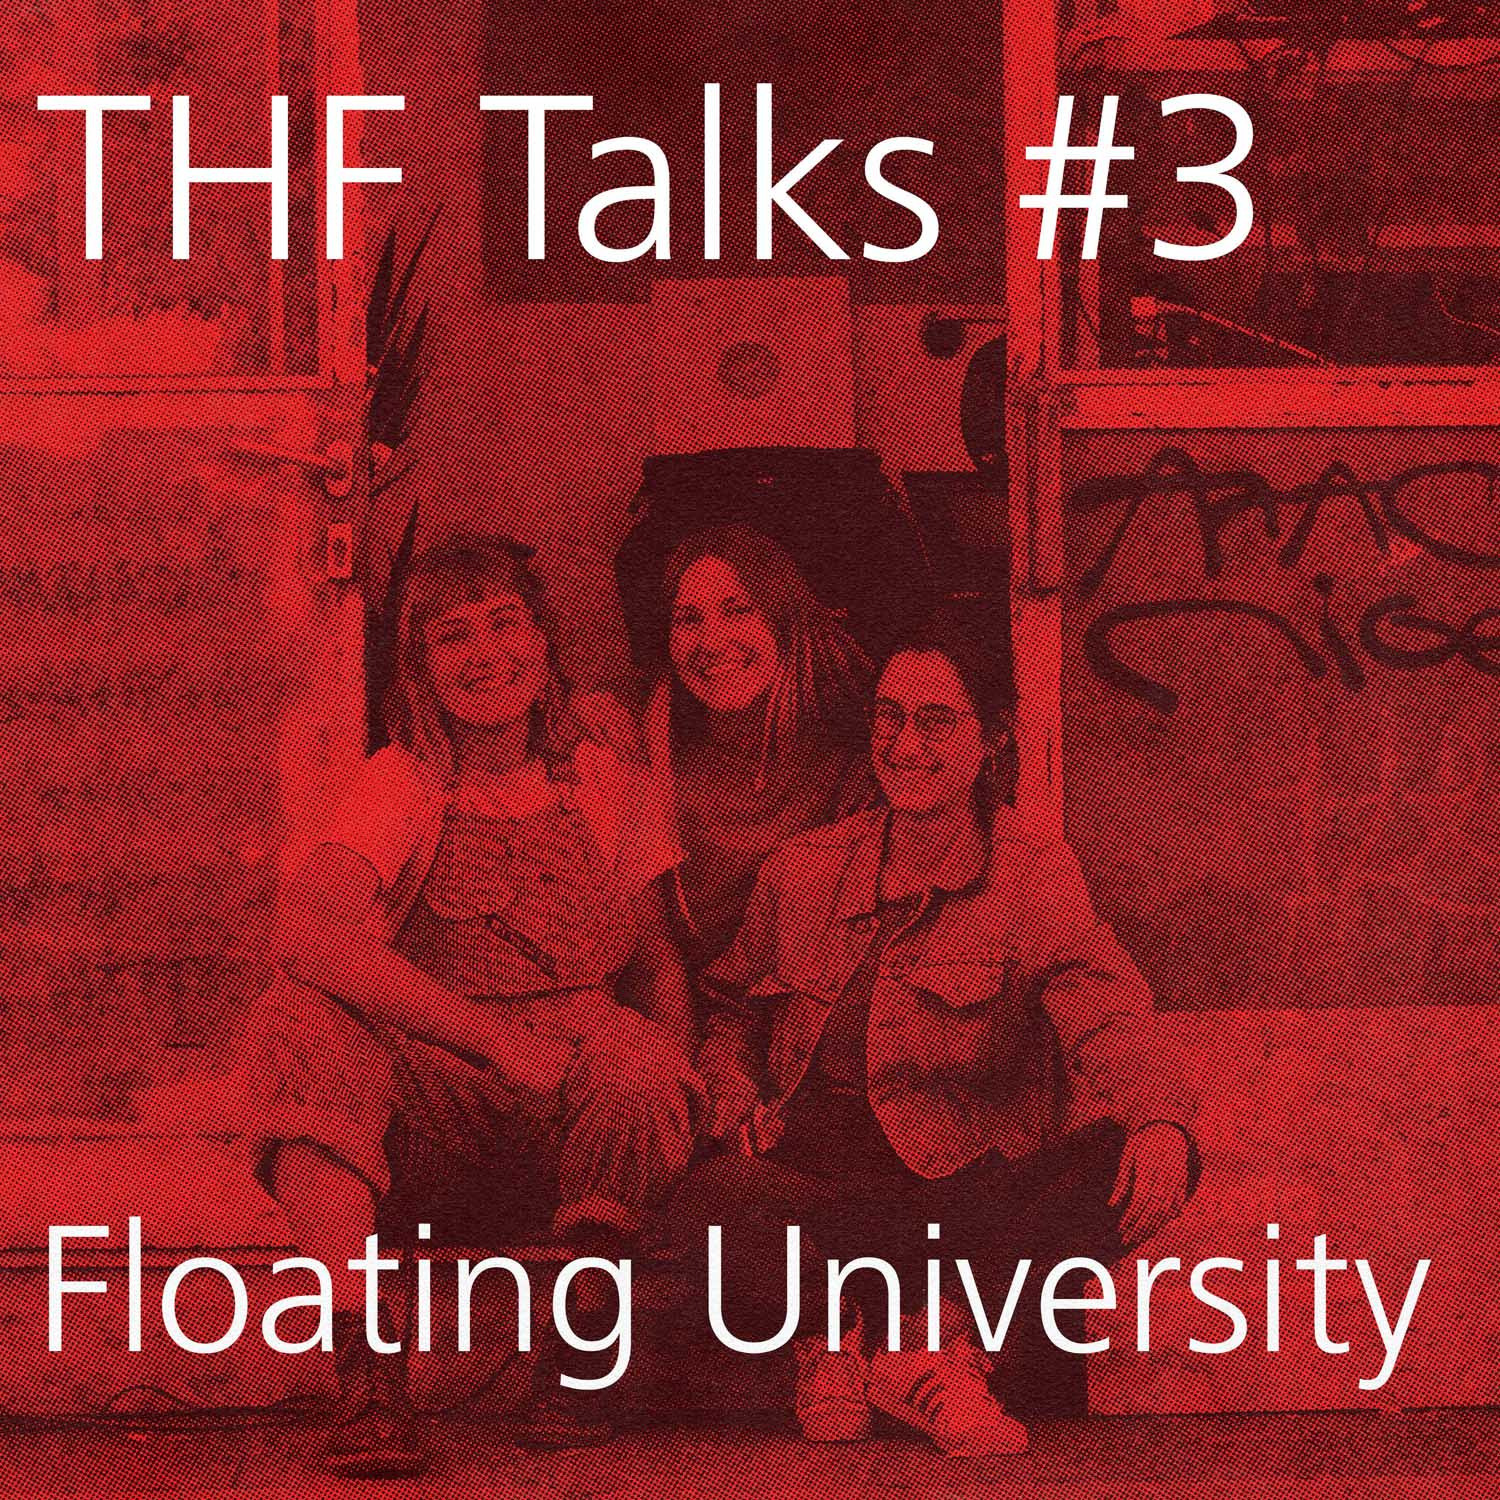 THF Talks #3 Floating University